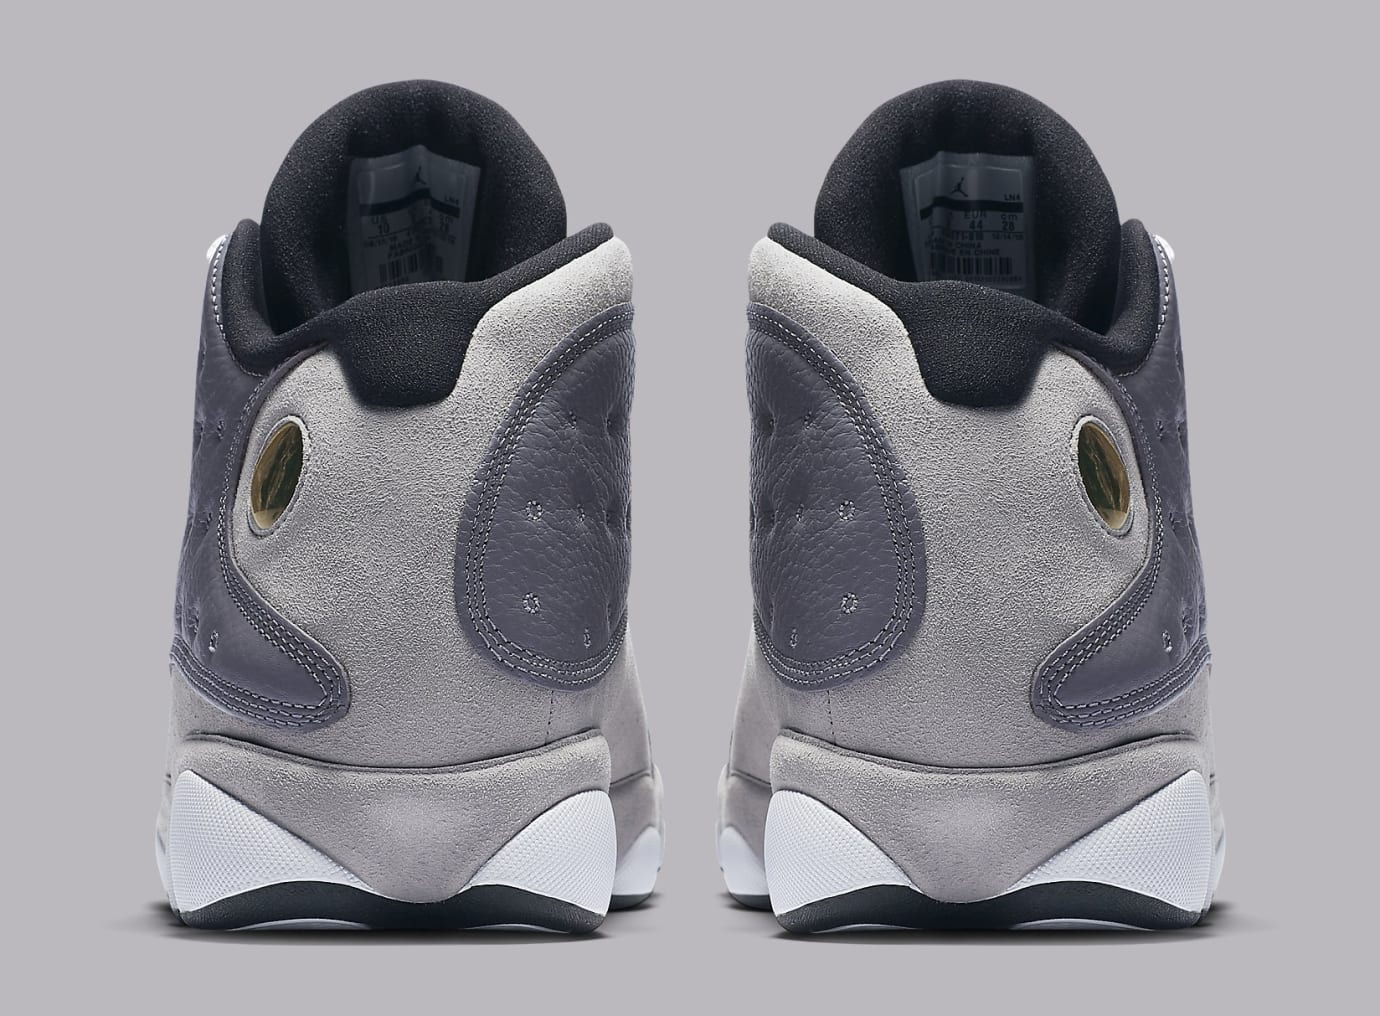 new products 75f6b c0236 Image via Nike Air Jordan 13 XIII Atmosphere Grey Release Date 414571-016  Heel